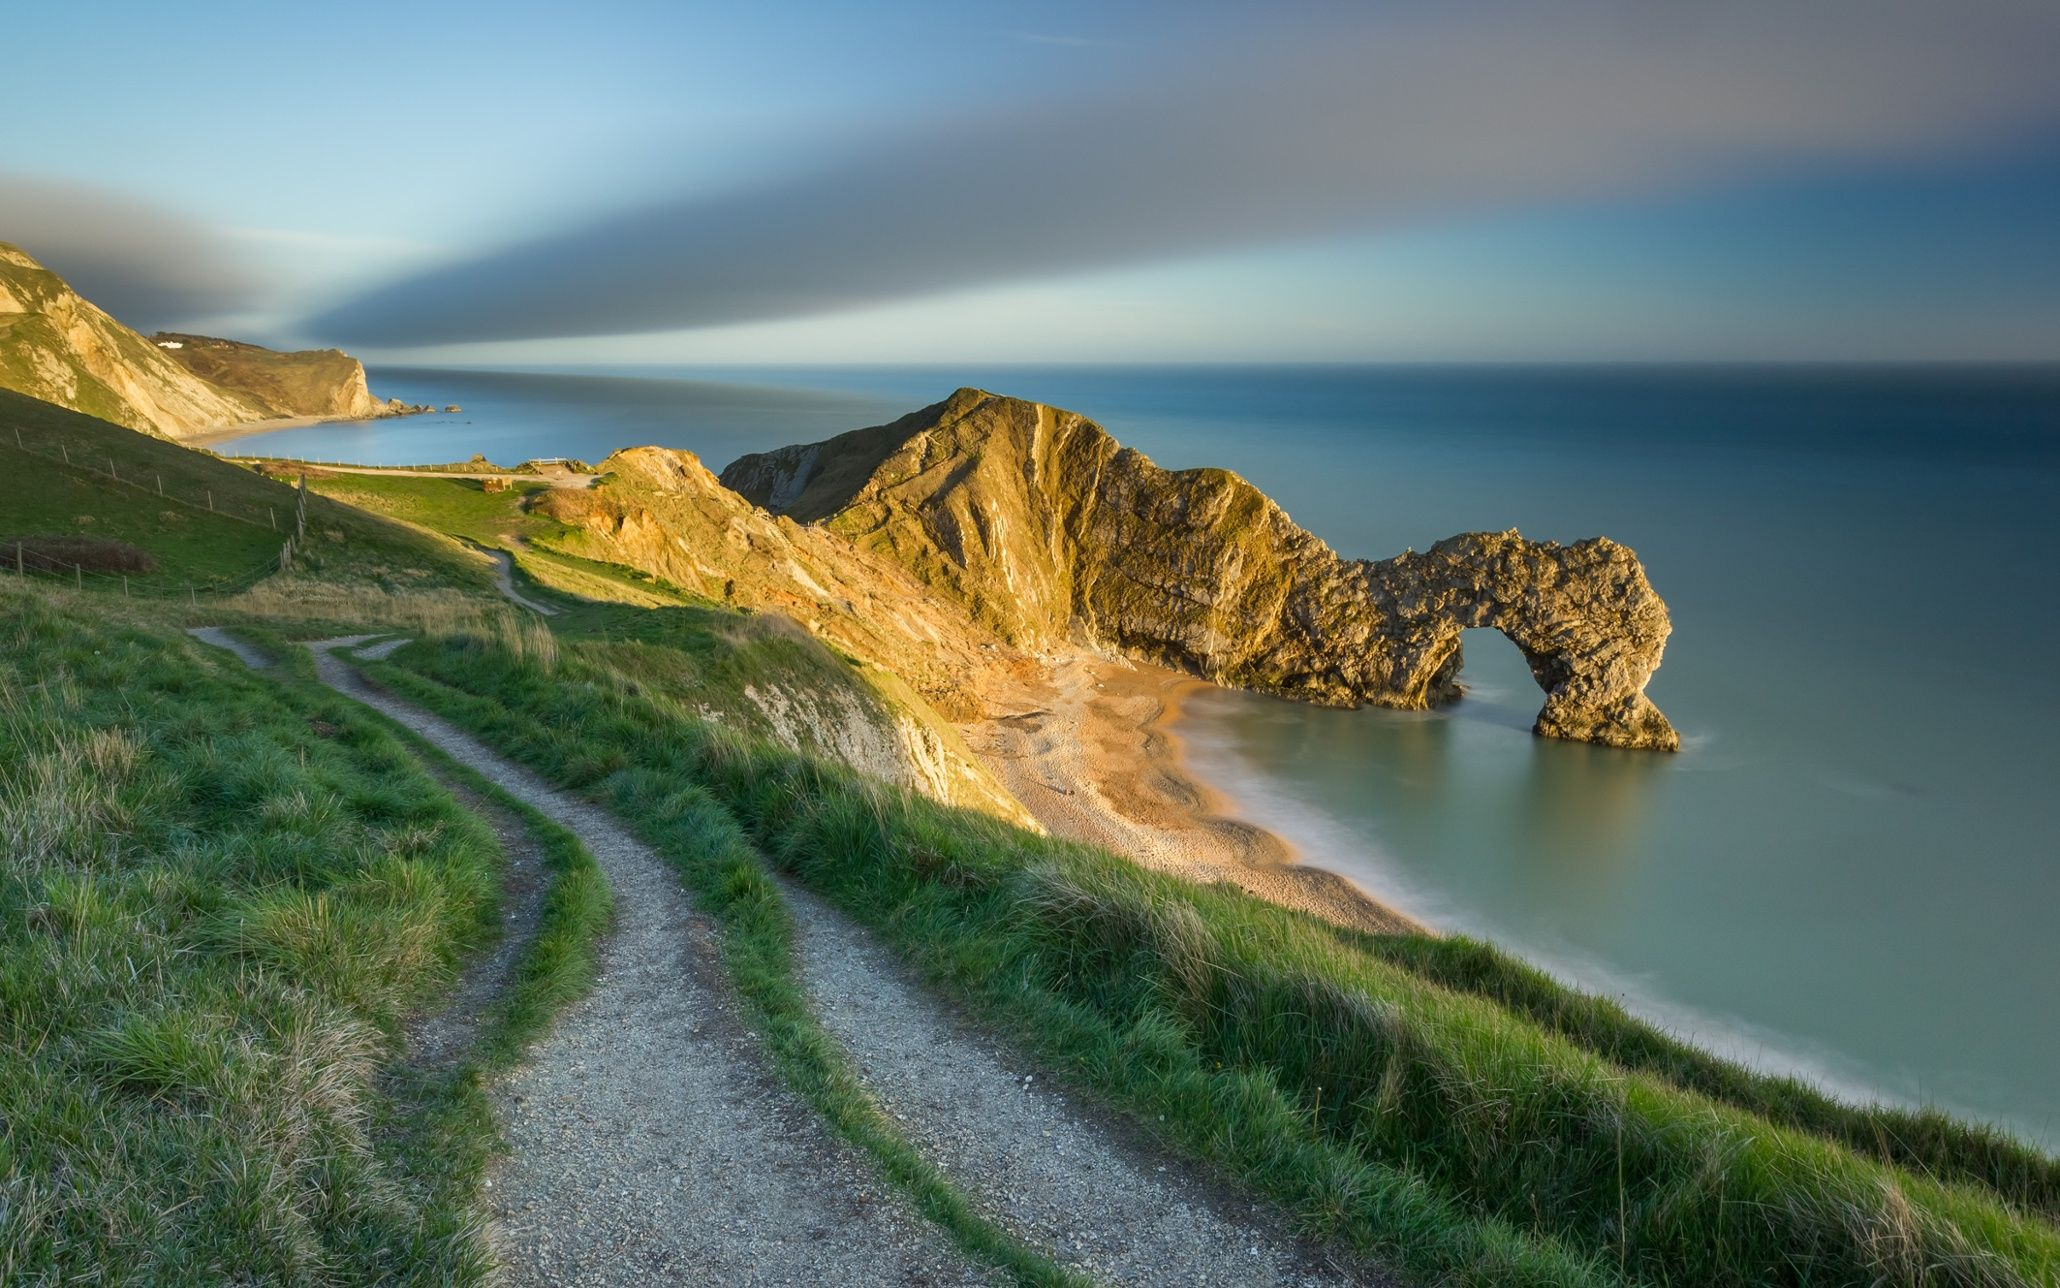 Take A View Landscape Photographer Of The Year 2014 In Pictures Landscape Photographers Uk Landscapes Landscape Photography